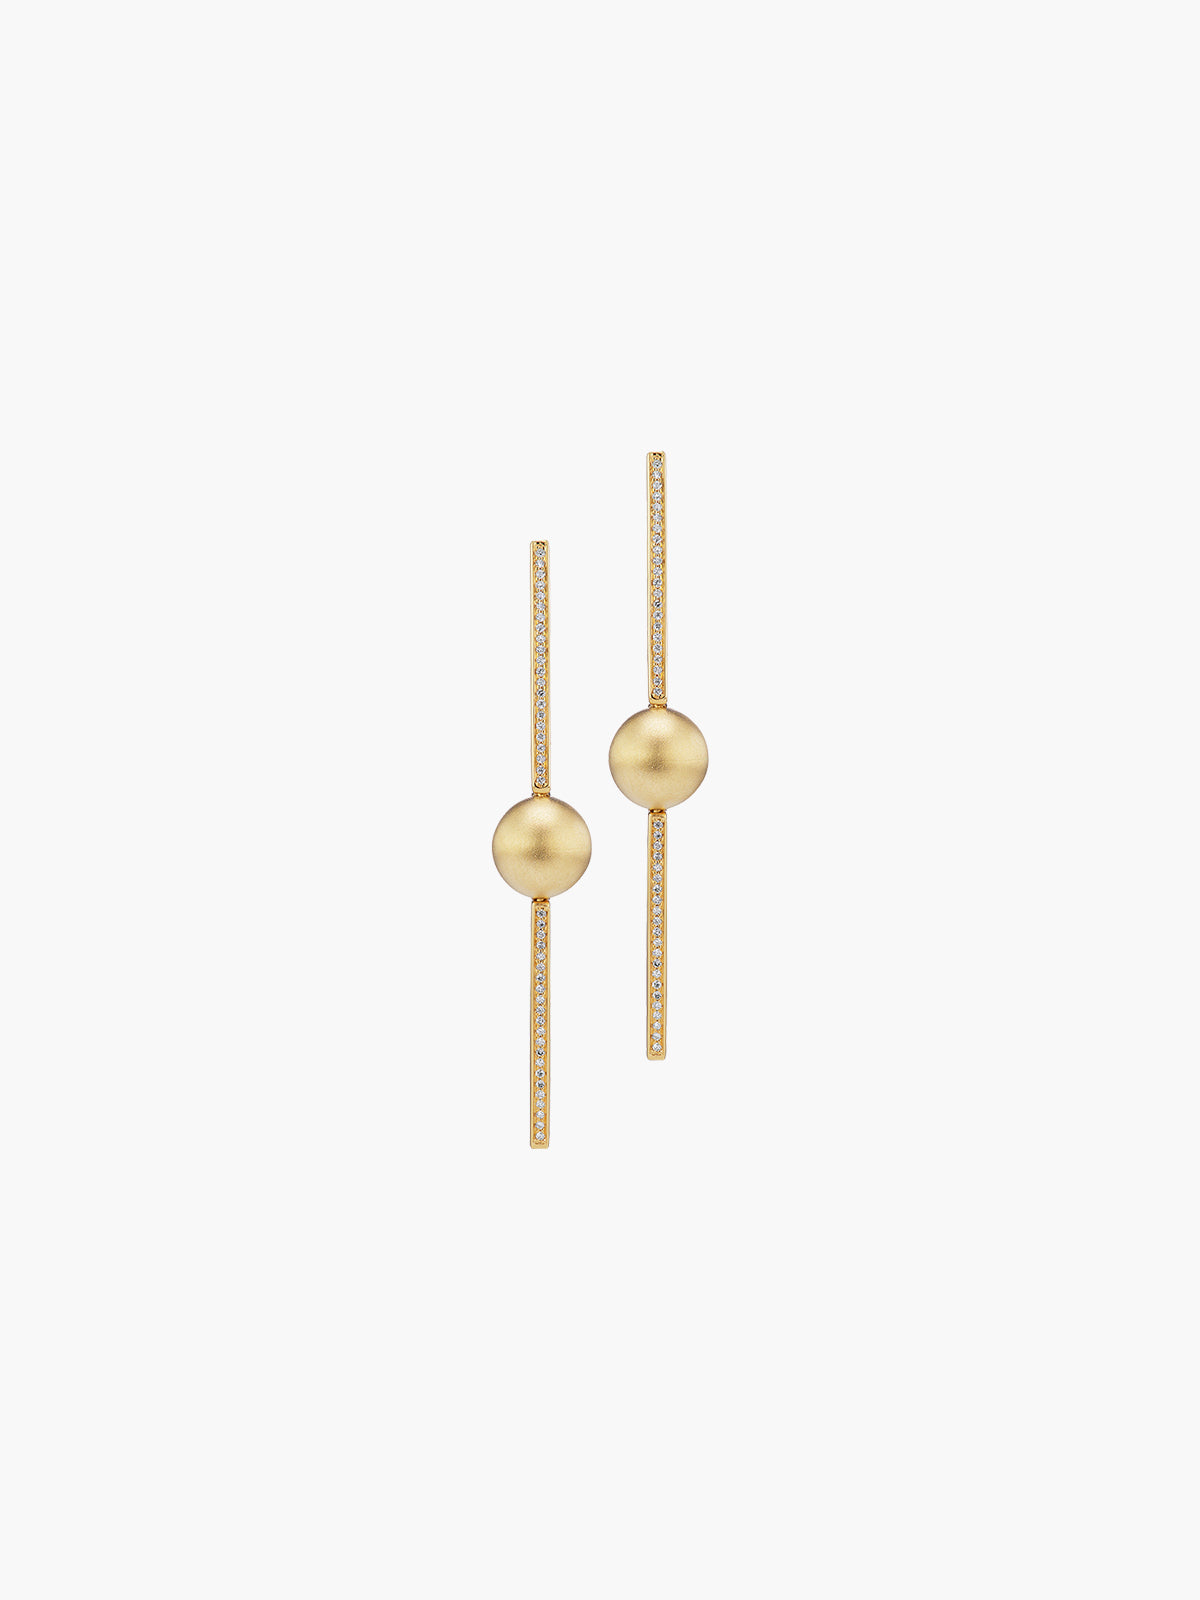 Boule D'Or Stick Earring | Matte Boule D'Or Stick Earring | Matte